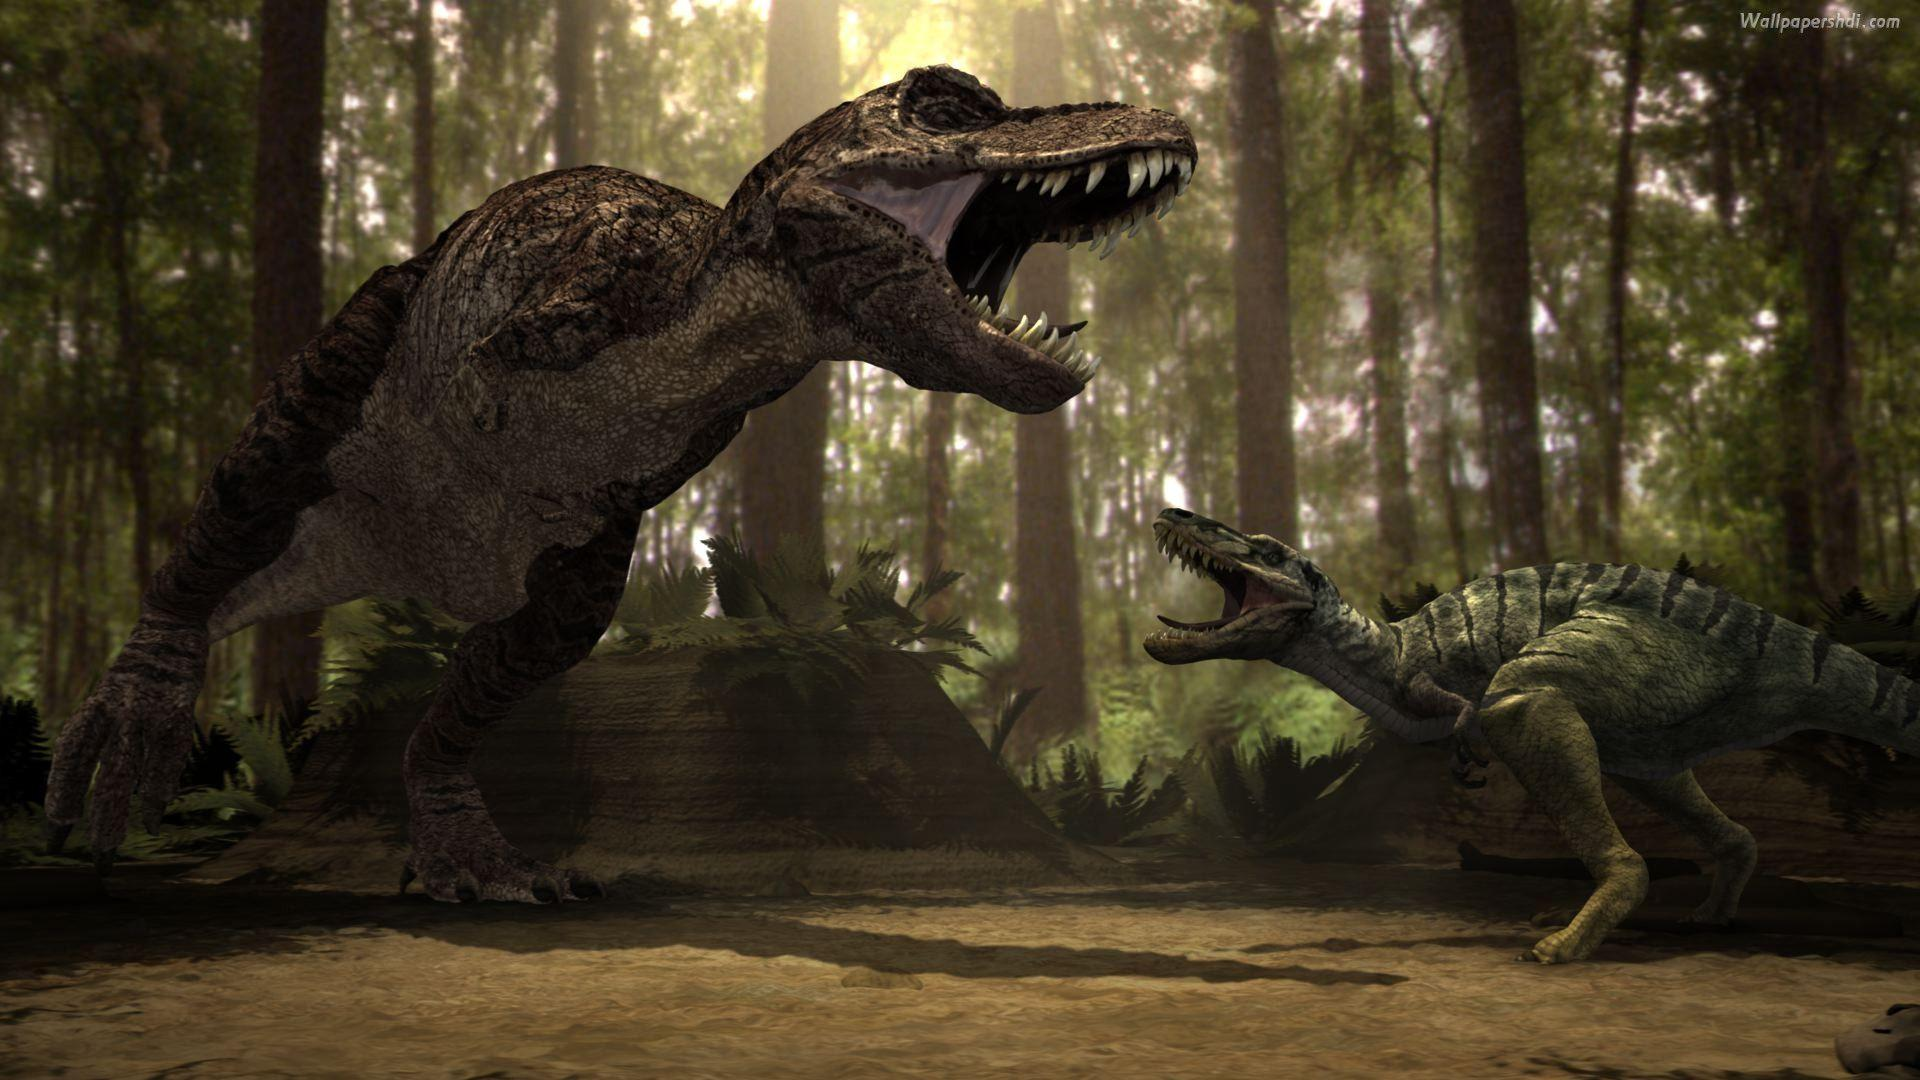 1920x1080 Cool Dinosaur Wallpaper (30 + Background Pictures)